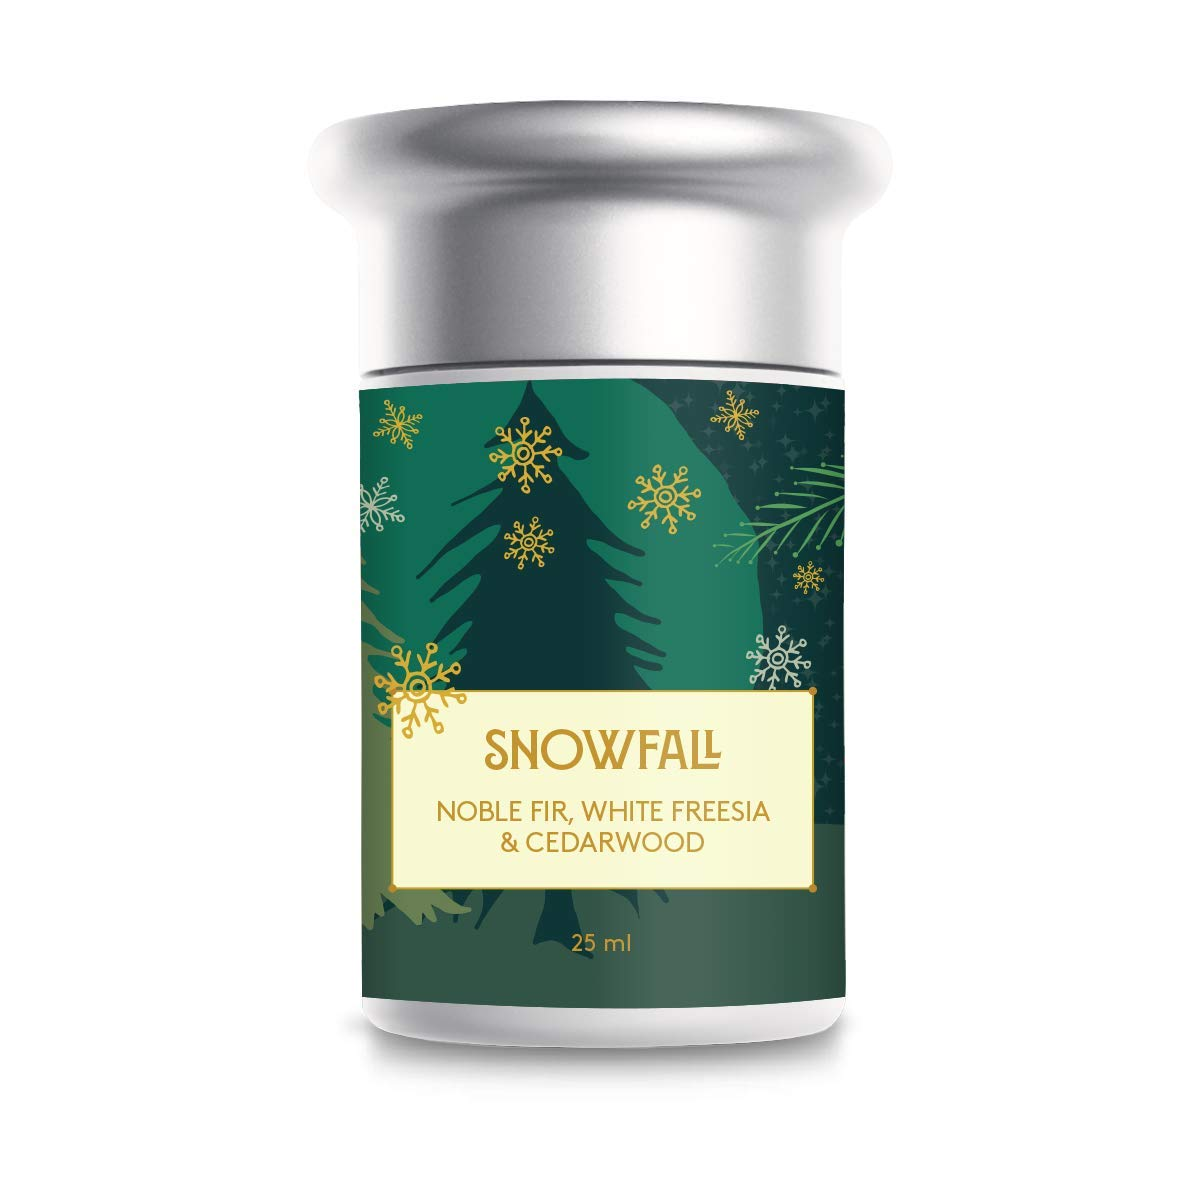 Snowfall Scented Home Fragrance - Schedule Using App With Aera Smart 2.0 Diffusers - State Of The Art Air Freshener Technology…